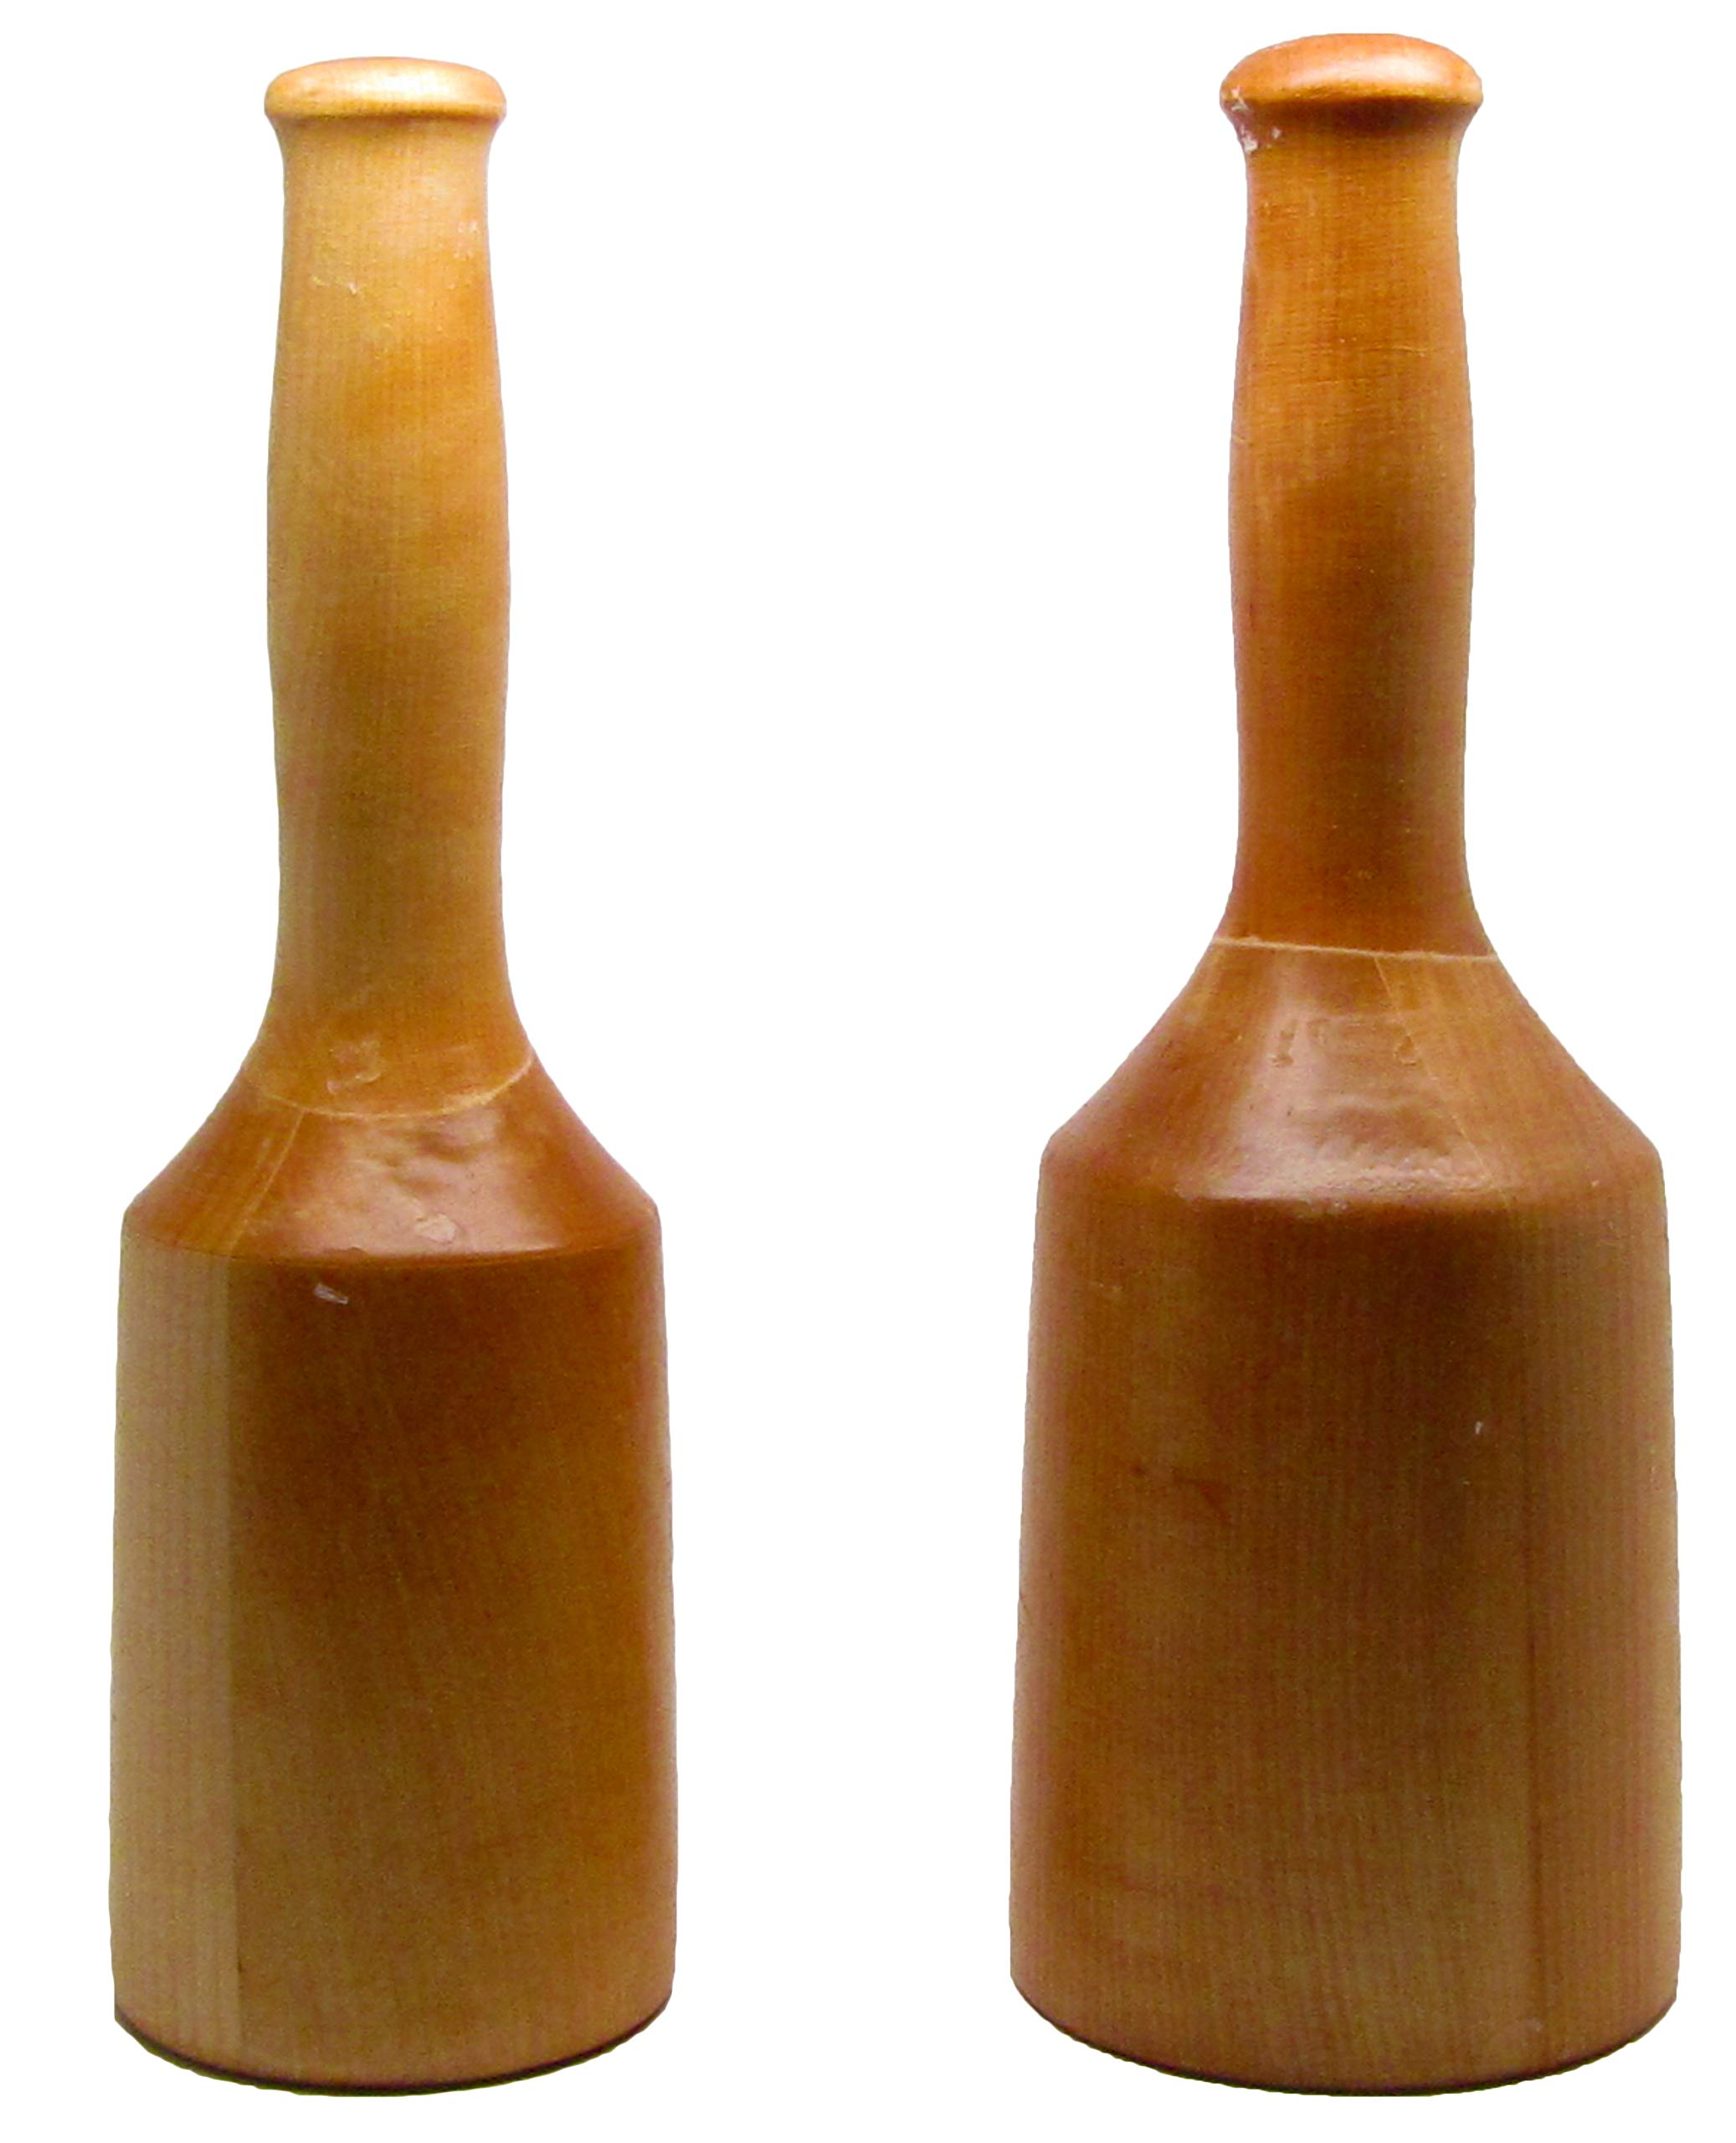 2 Wooden Mallet Set 20 and 15 oz, Birchwood Hardwood Wax Coated, Carvers Carpenters Mallet by UJ Ramelson Co